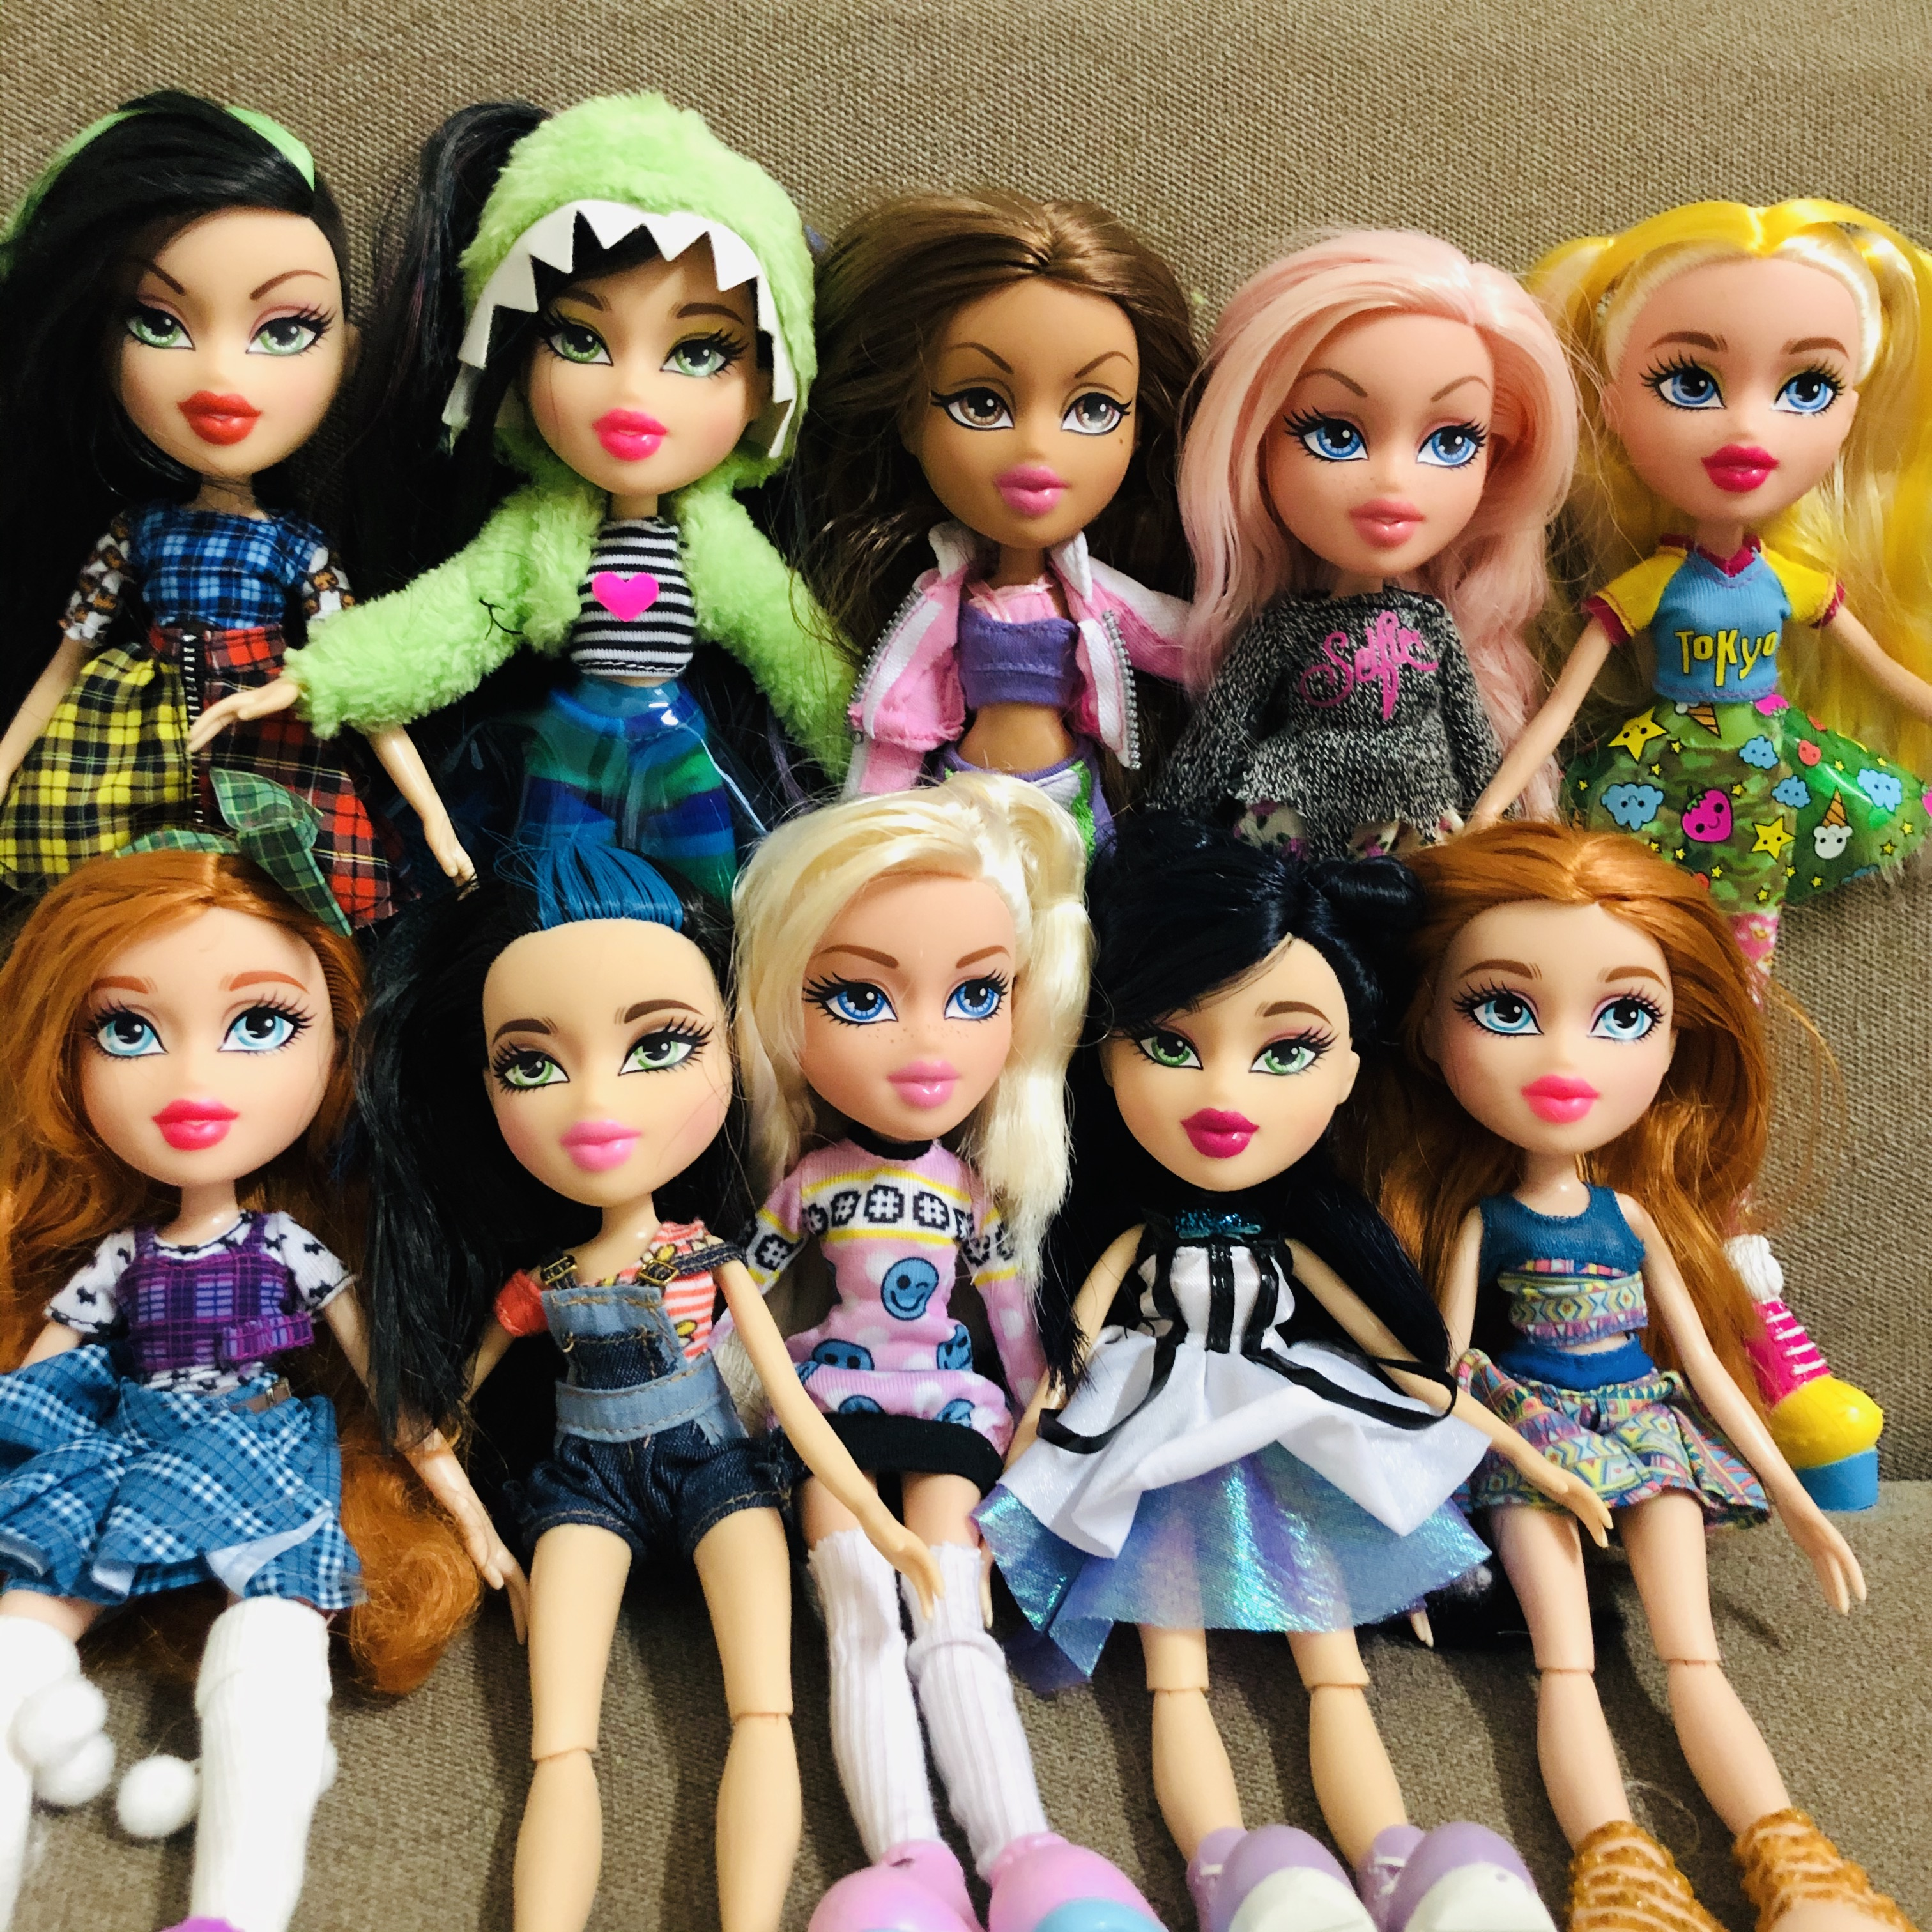 Original New 23cm Original Fashion Action Figure BratzDoll Slumber Party YASMIN Red Hair Beautiful MGAdoll Best Gift For Child